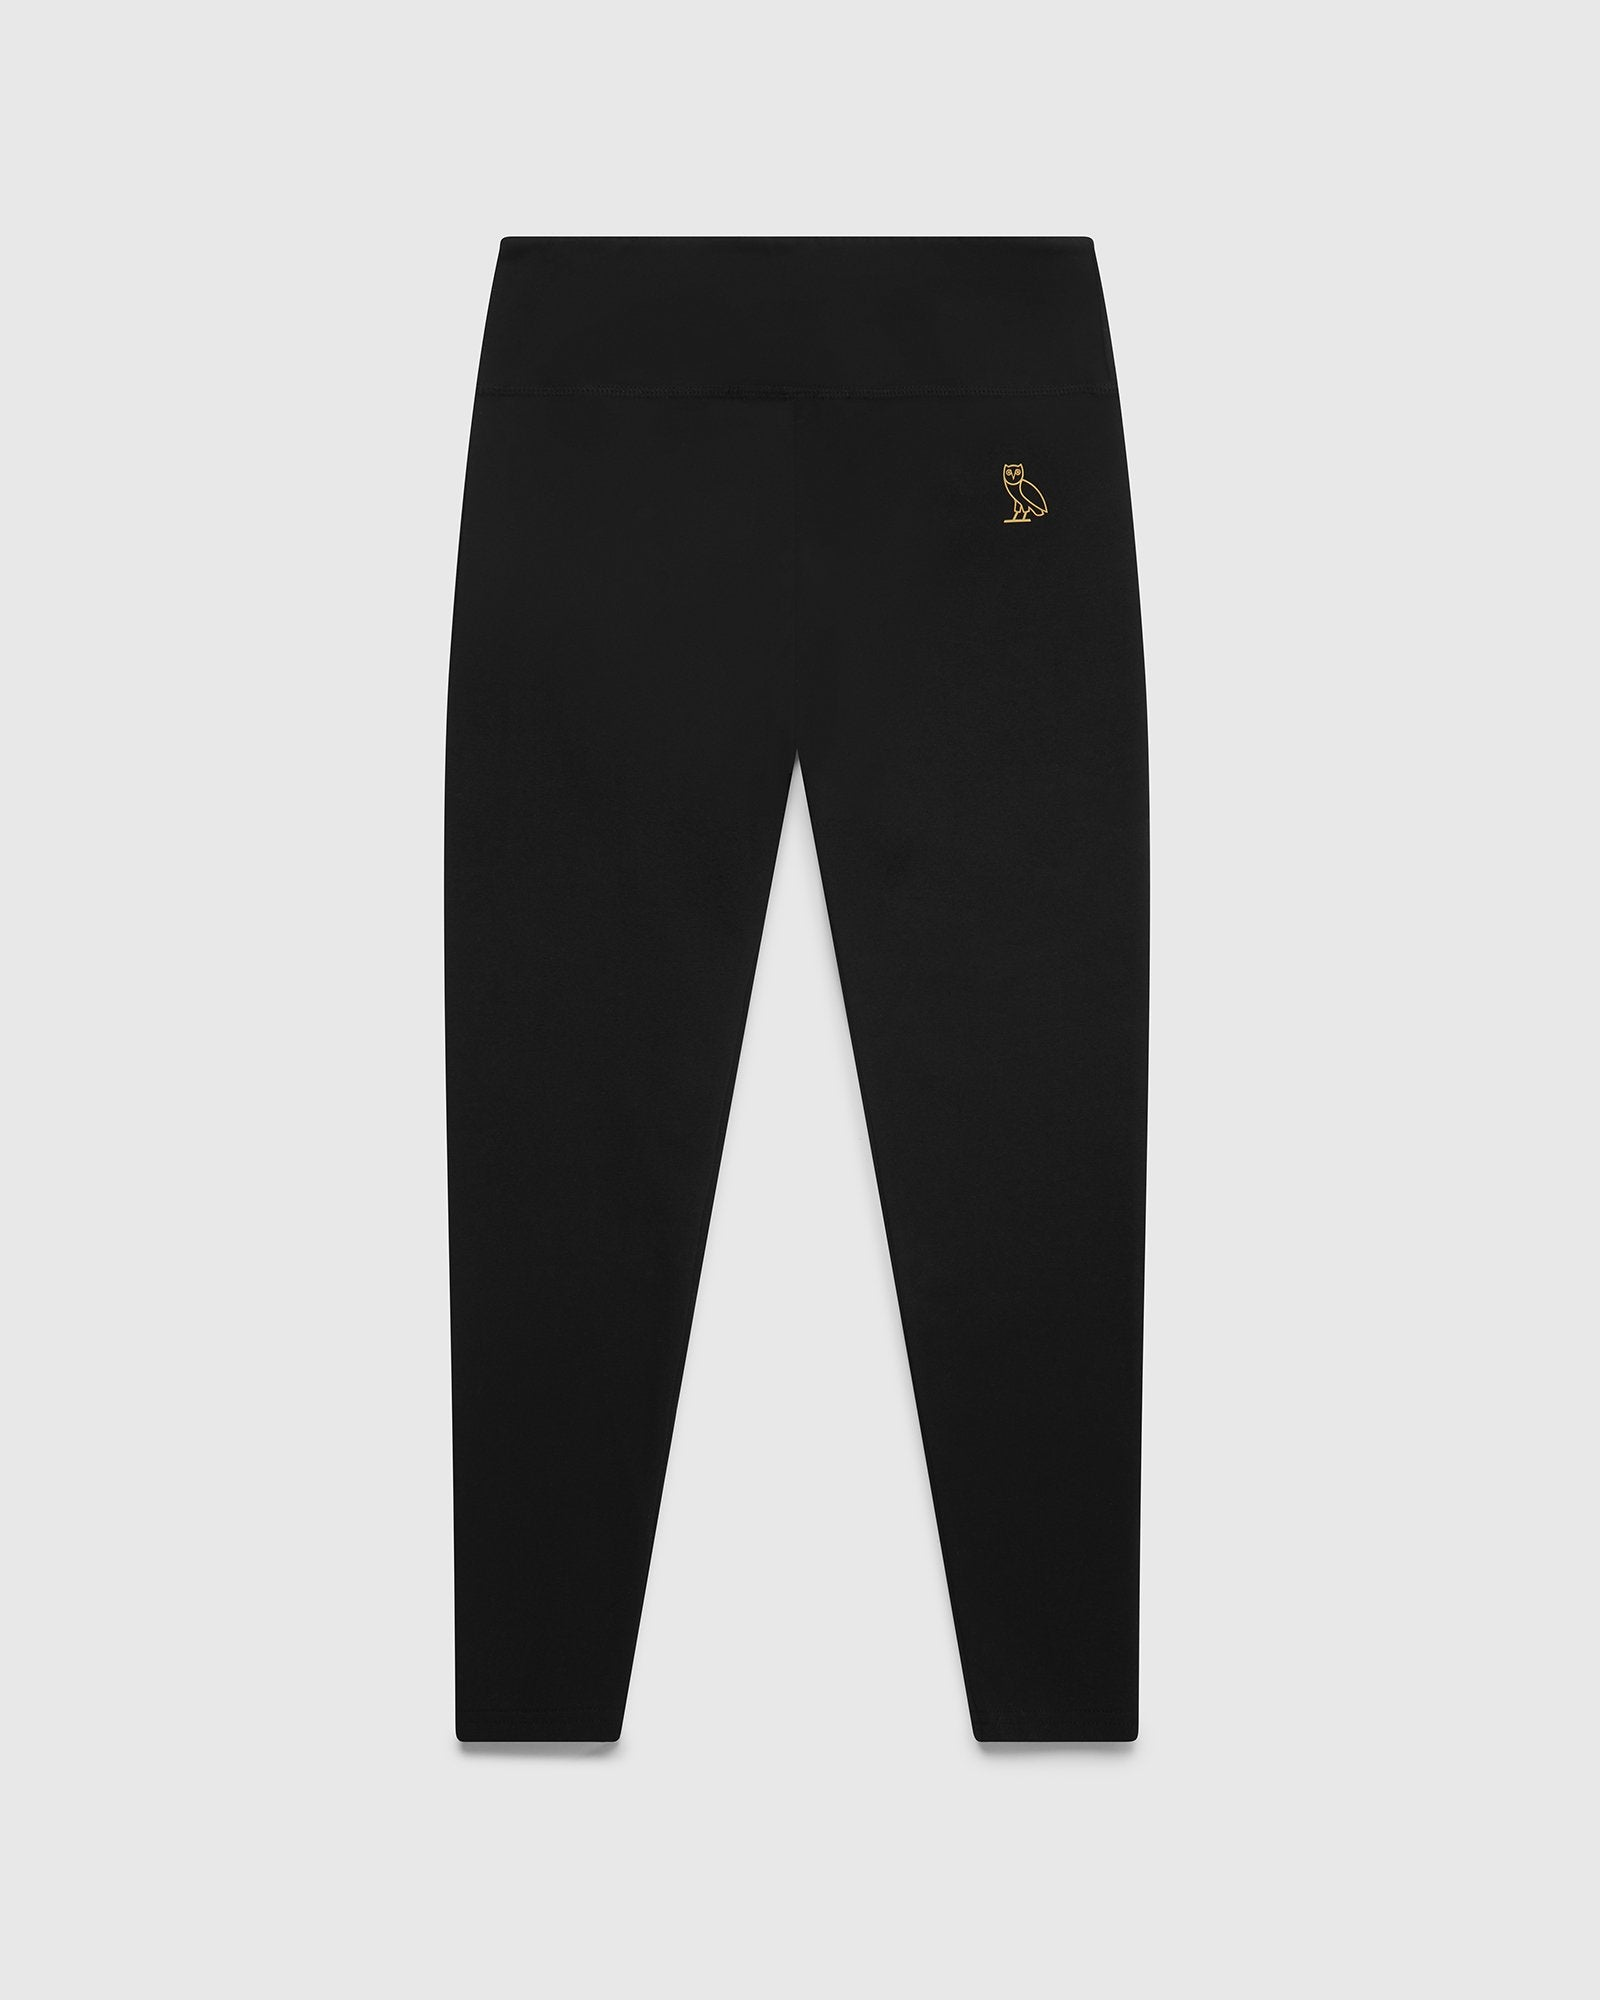 WMNS HIGH WAIST LEGGING - BLACK IMAGE #1